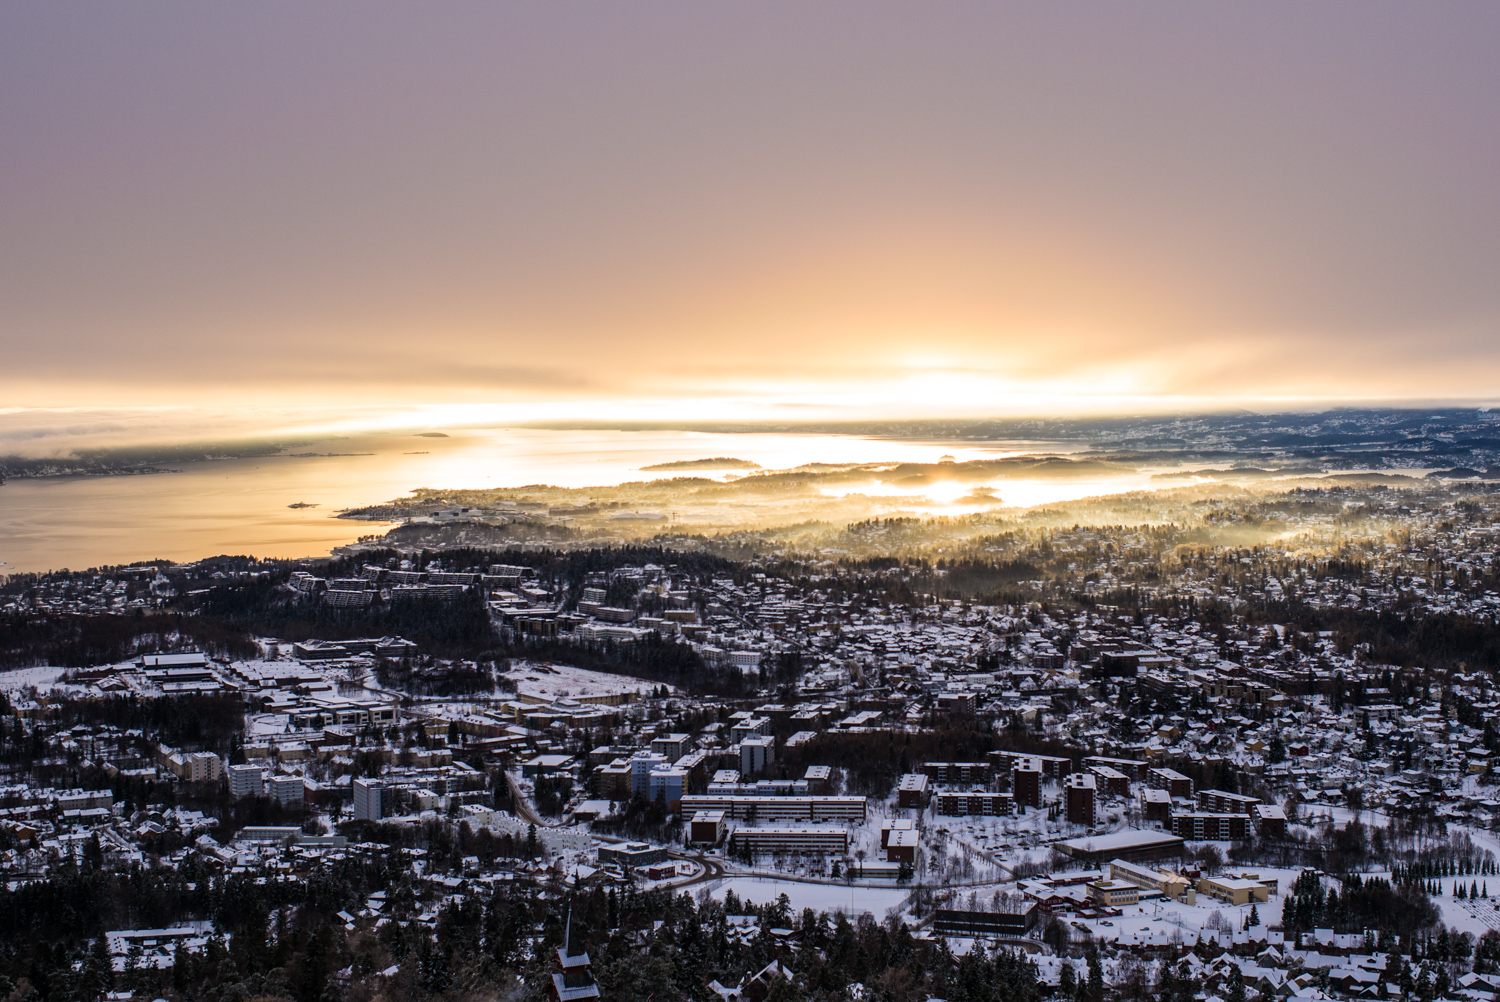 Oslo in the winter